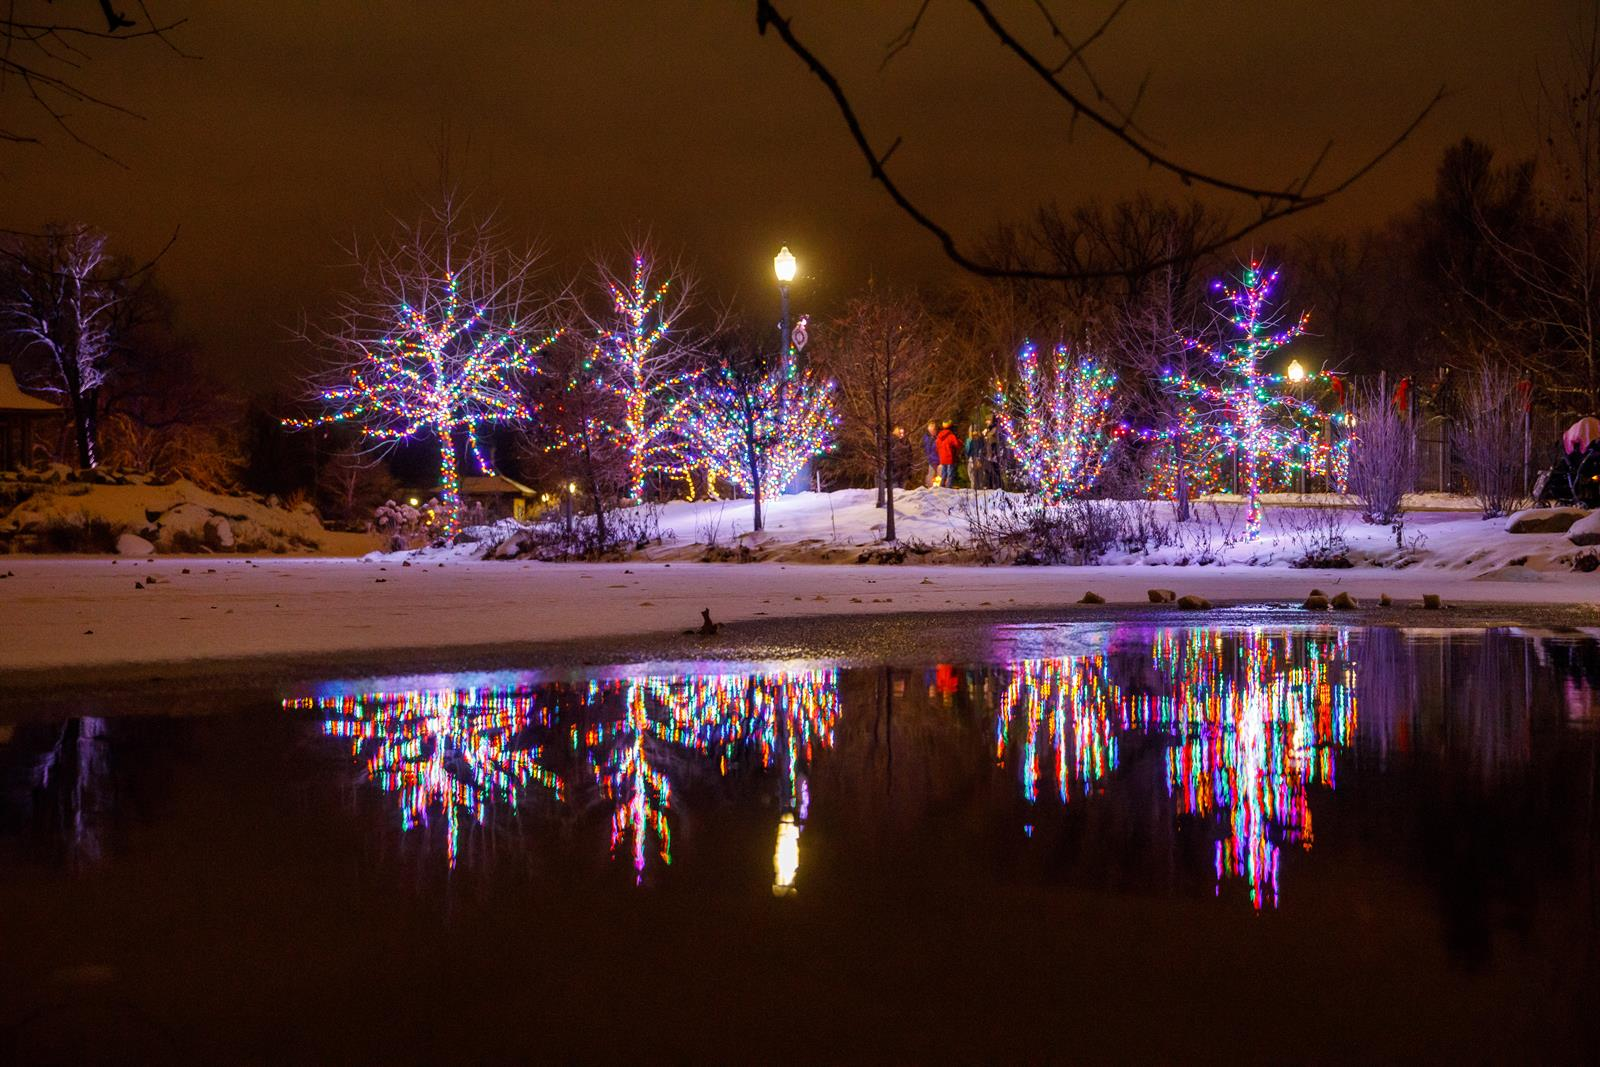 Wellfield Botanic Gardens Winter Wonderland Holiday Lights